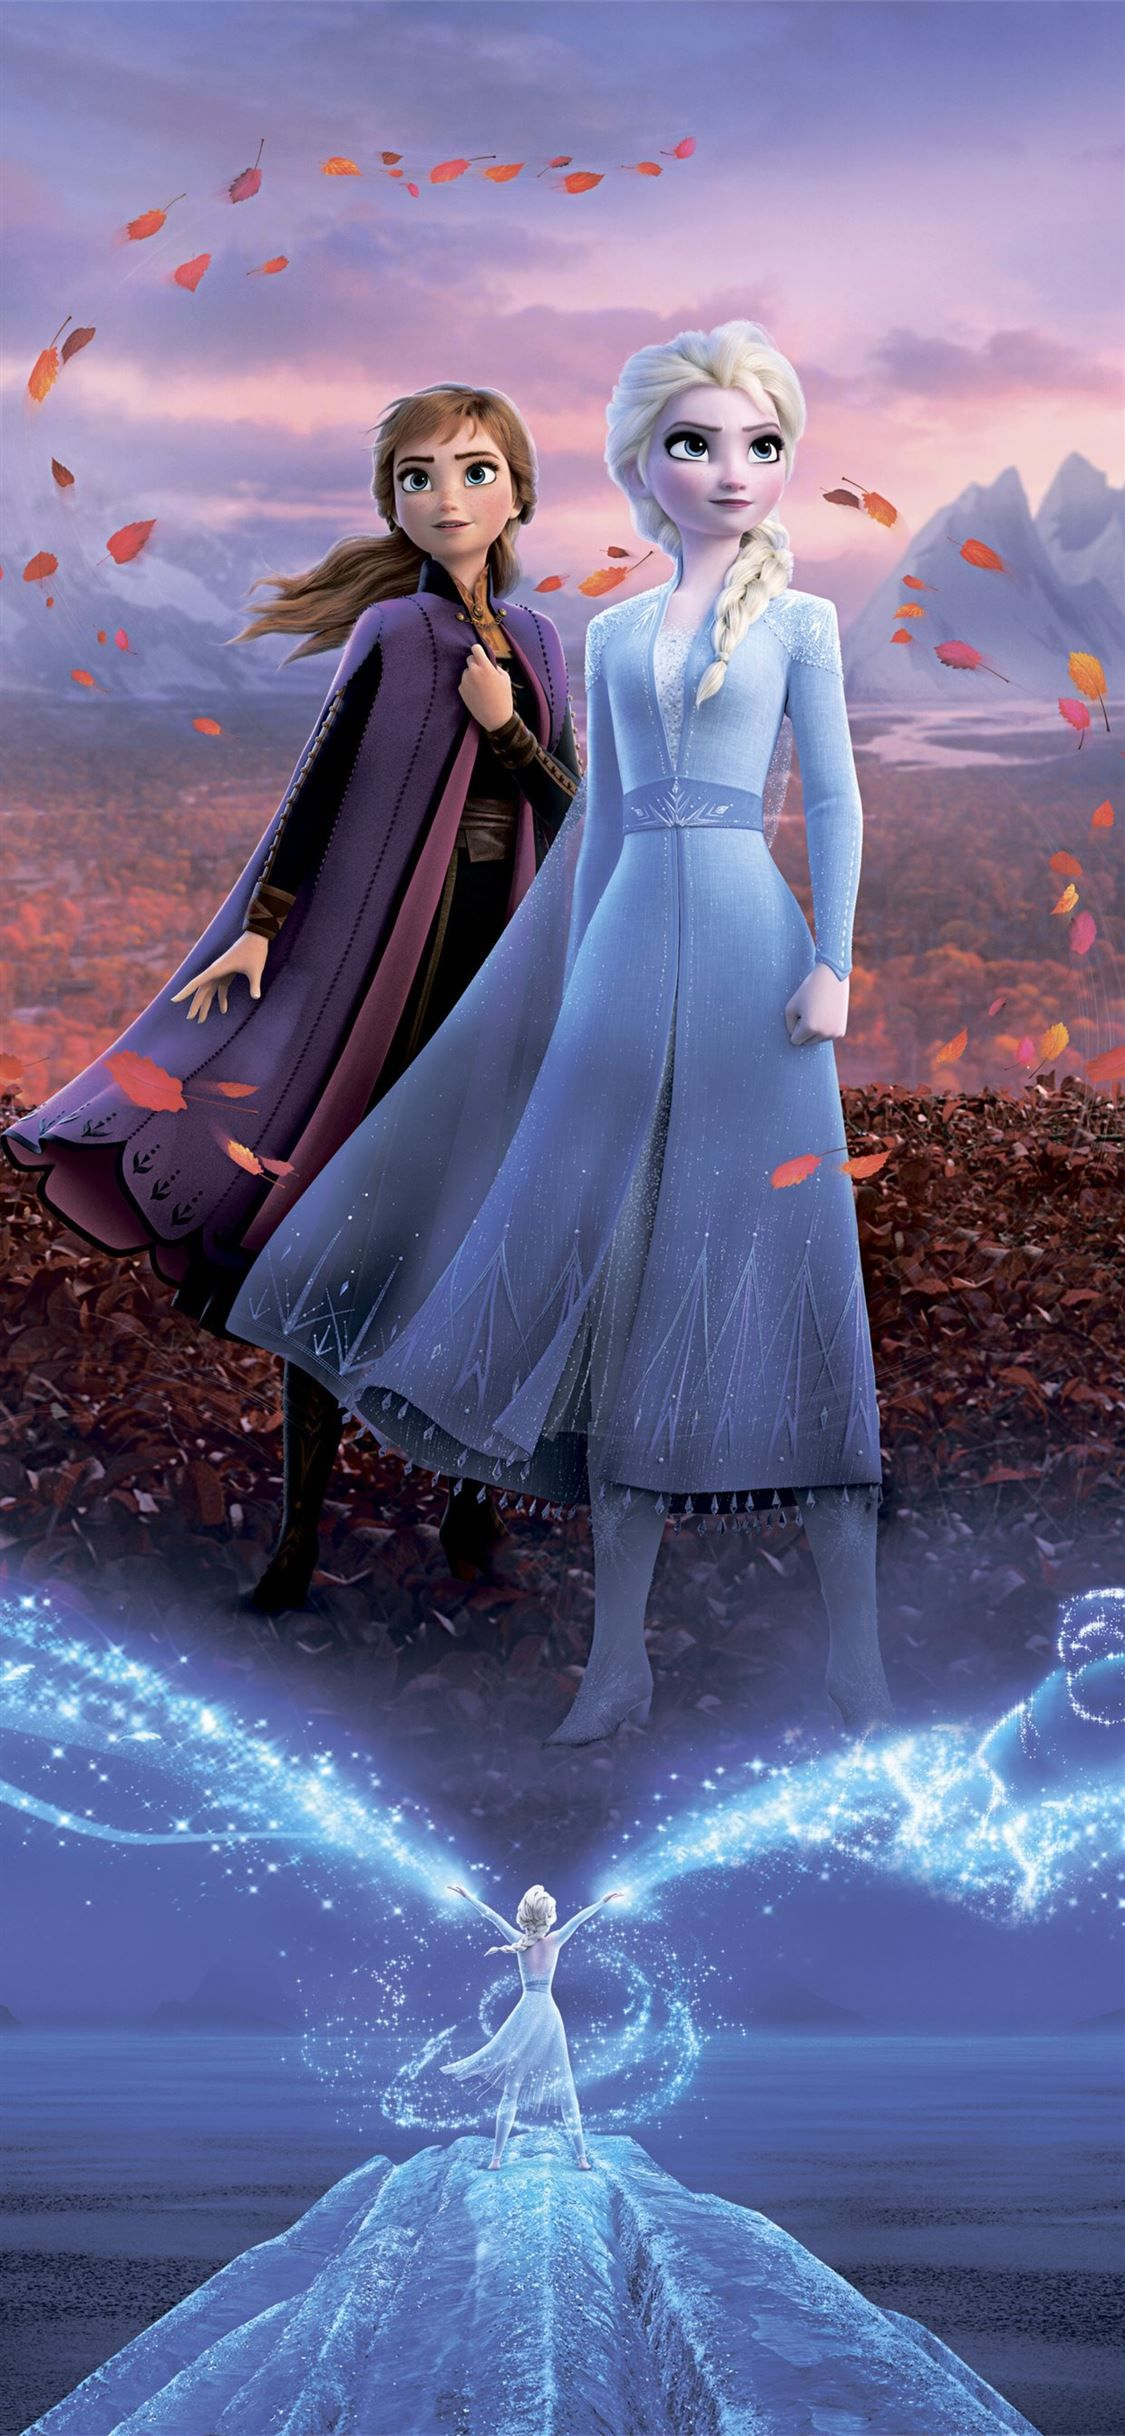 Frozen 2 5k Frozen2 Movies 2019movies Disney Poster 4k 5k Iphone11wallpaper In 2020 Frozen Wallpaper Disney Princess Frozen Disney Princess Wallpaper